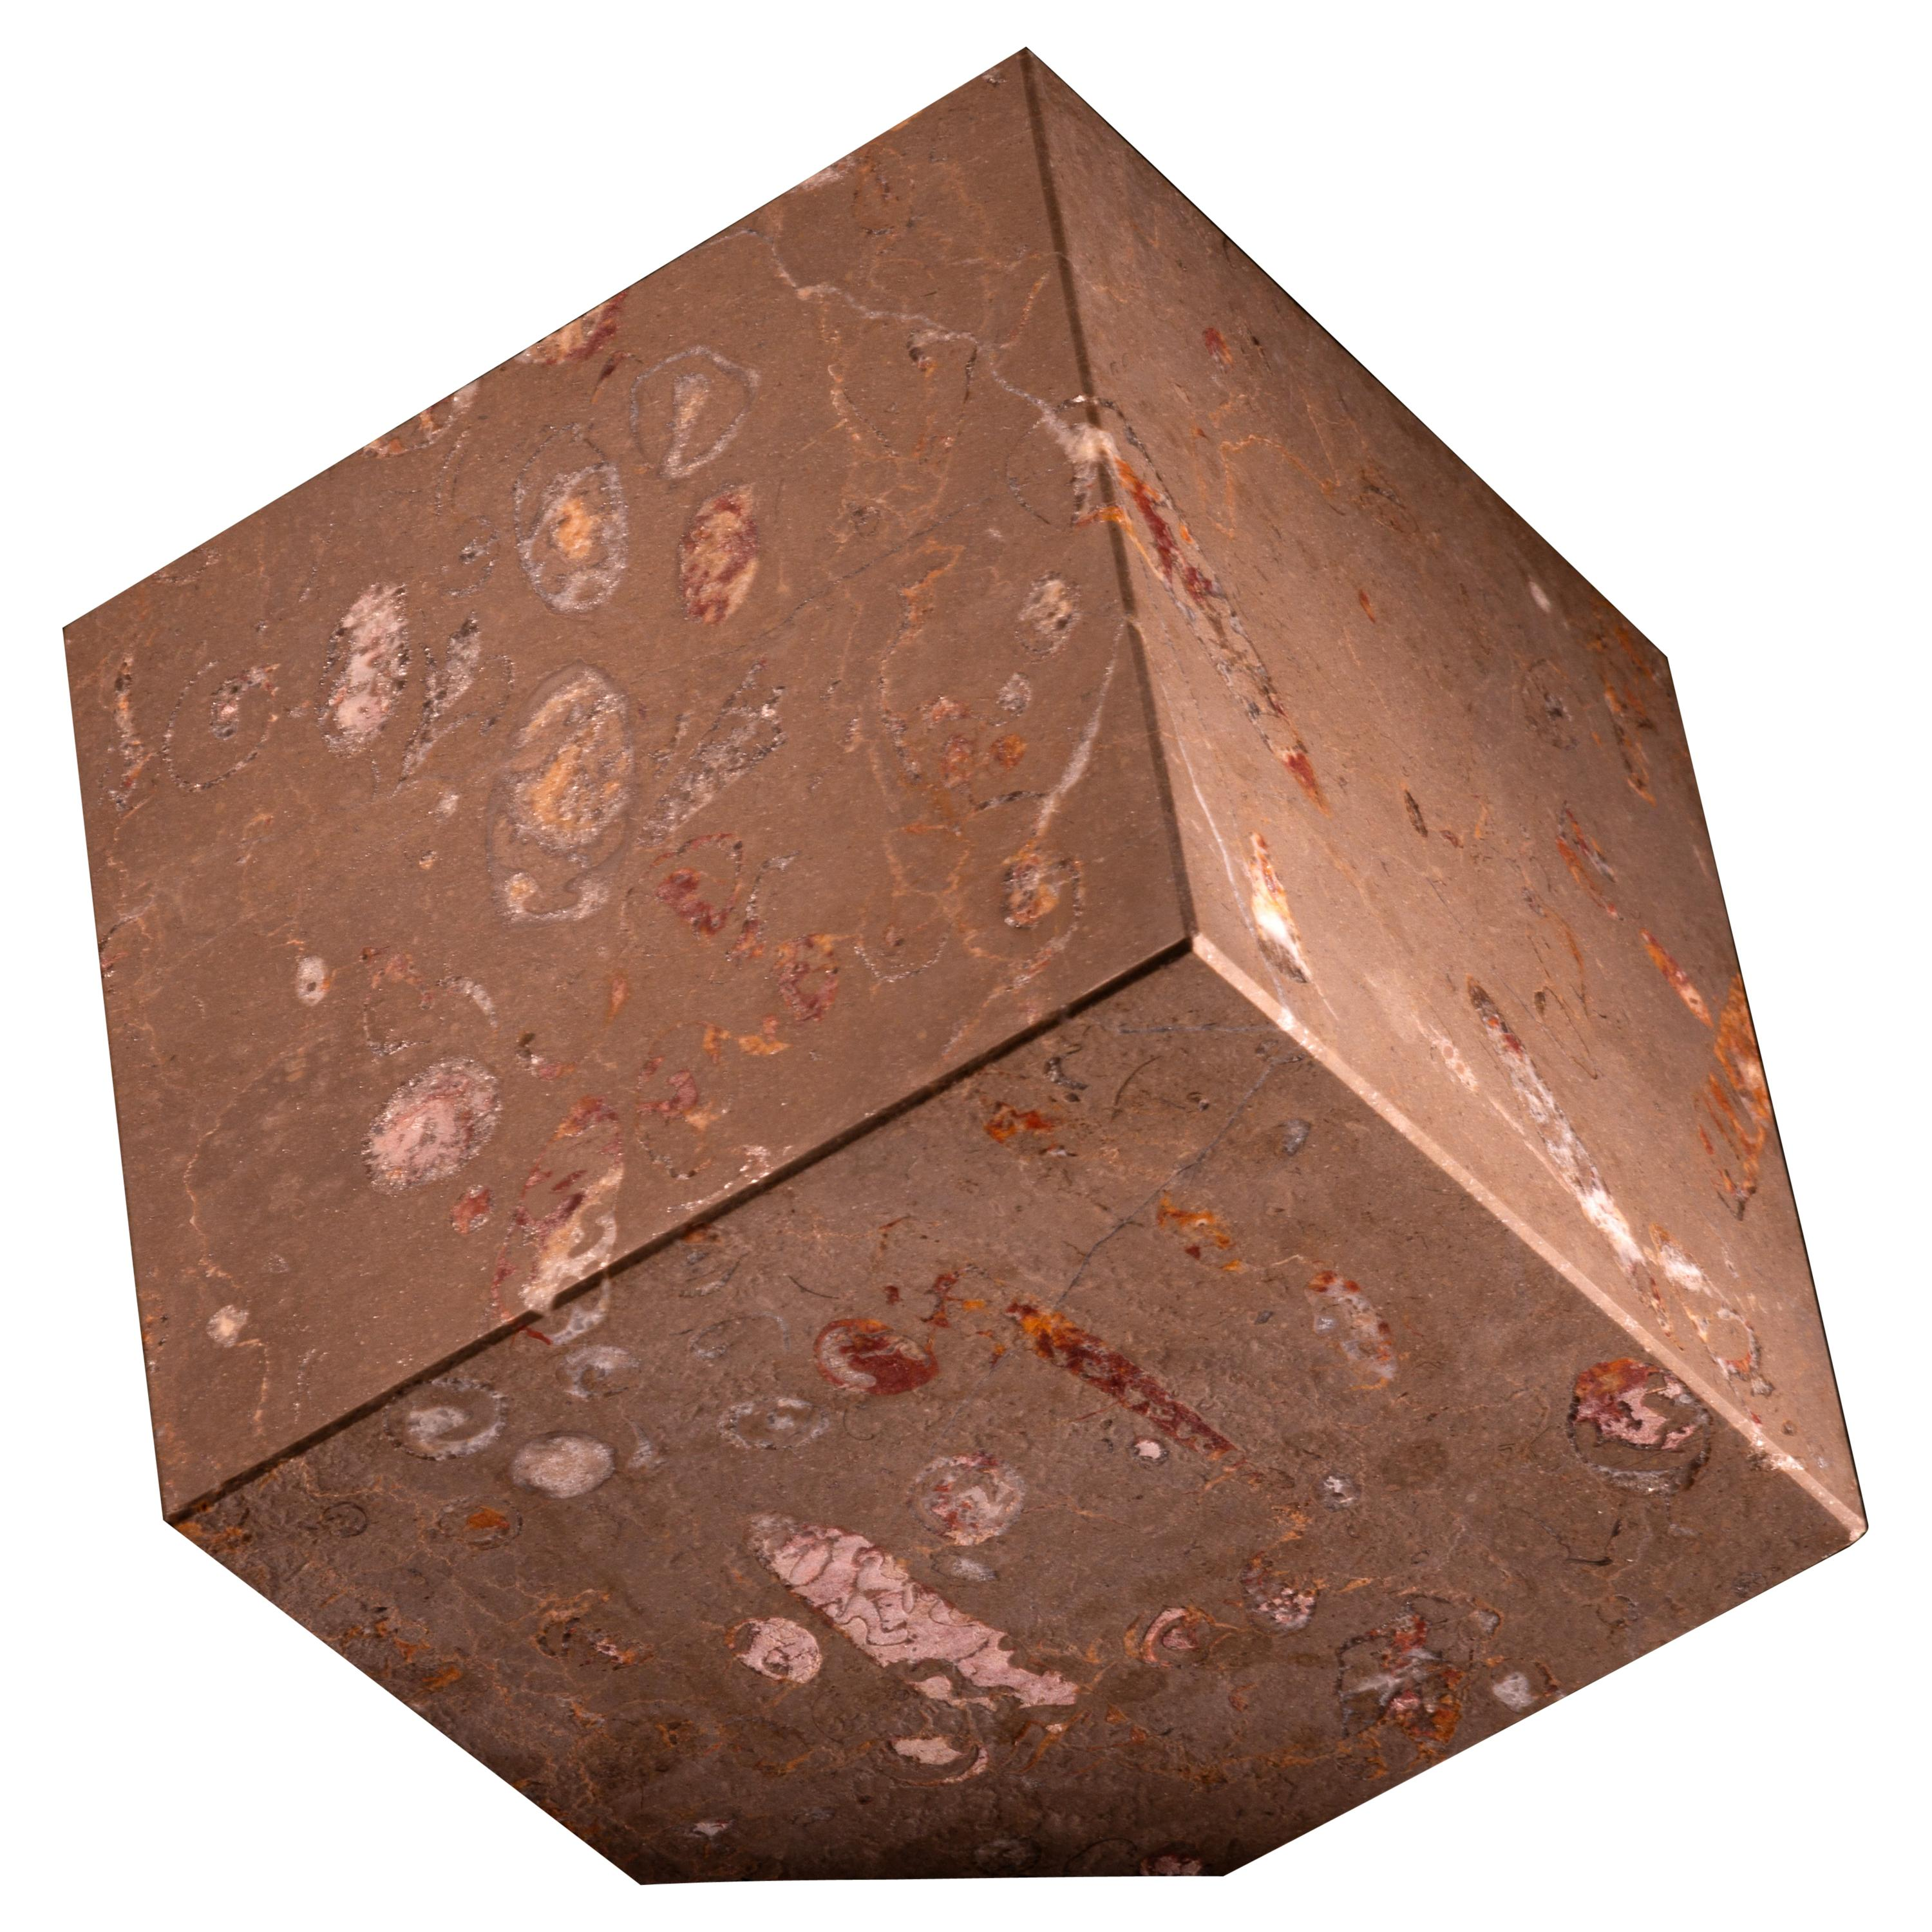 Aina Contemporary Jurassic Fossil Marble Glacies Cube, Living Collection